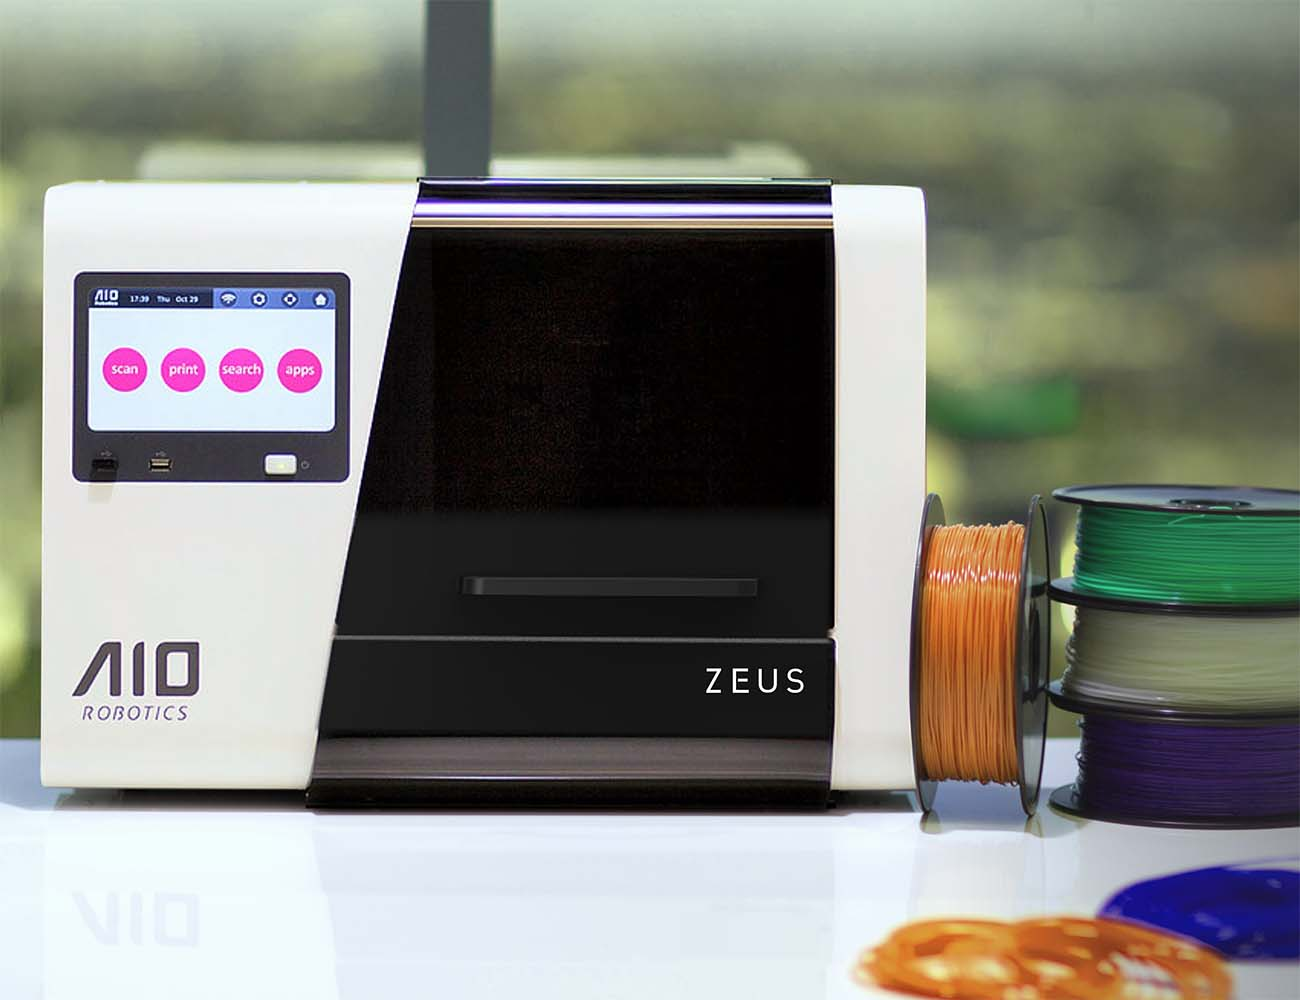 Zeus+All-In-One+3D+Printer+By+AIO+Robotics